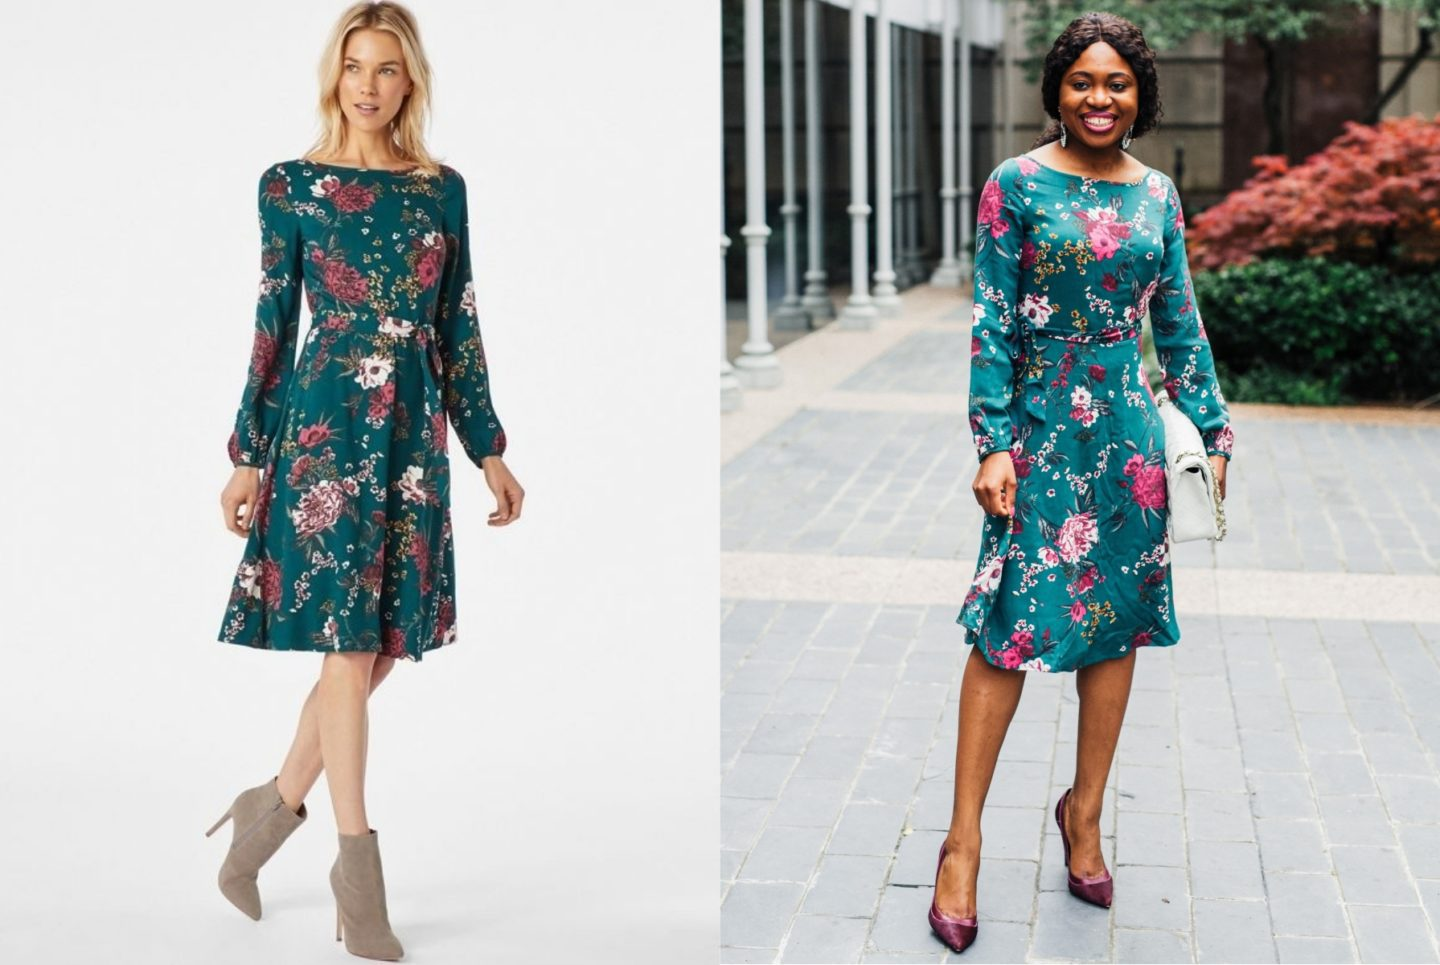 A side by side comparing wearing a JustFab Belted Blouson Sleeve Dress. Is JustFab a scam? Here's my honest review after spending my hard-earned money shopping for dresses and shoes on JustFab.